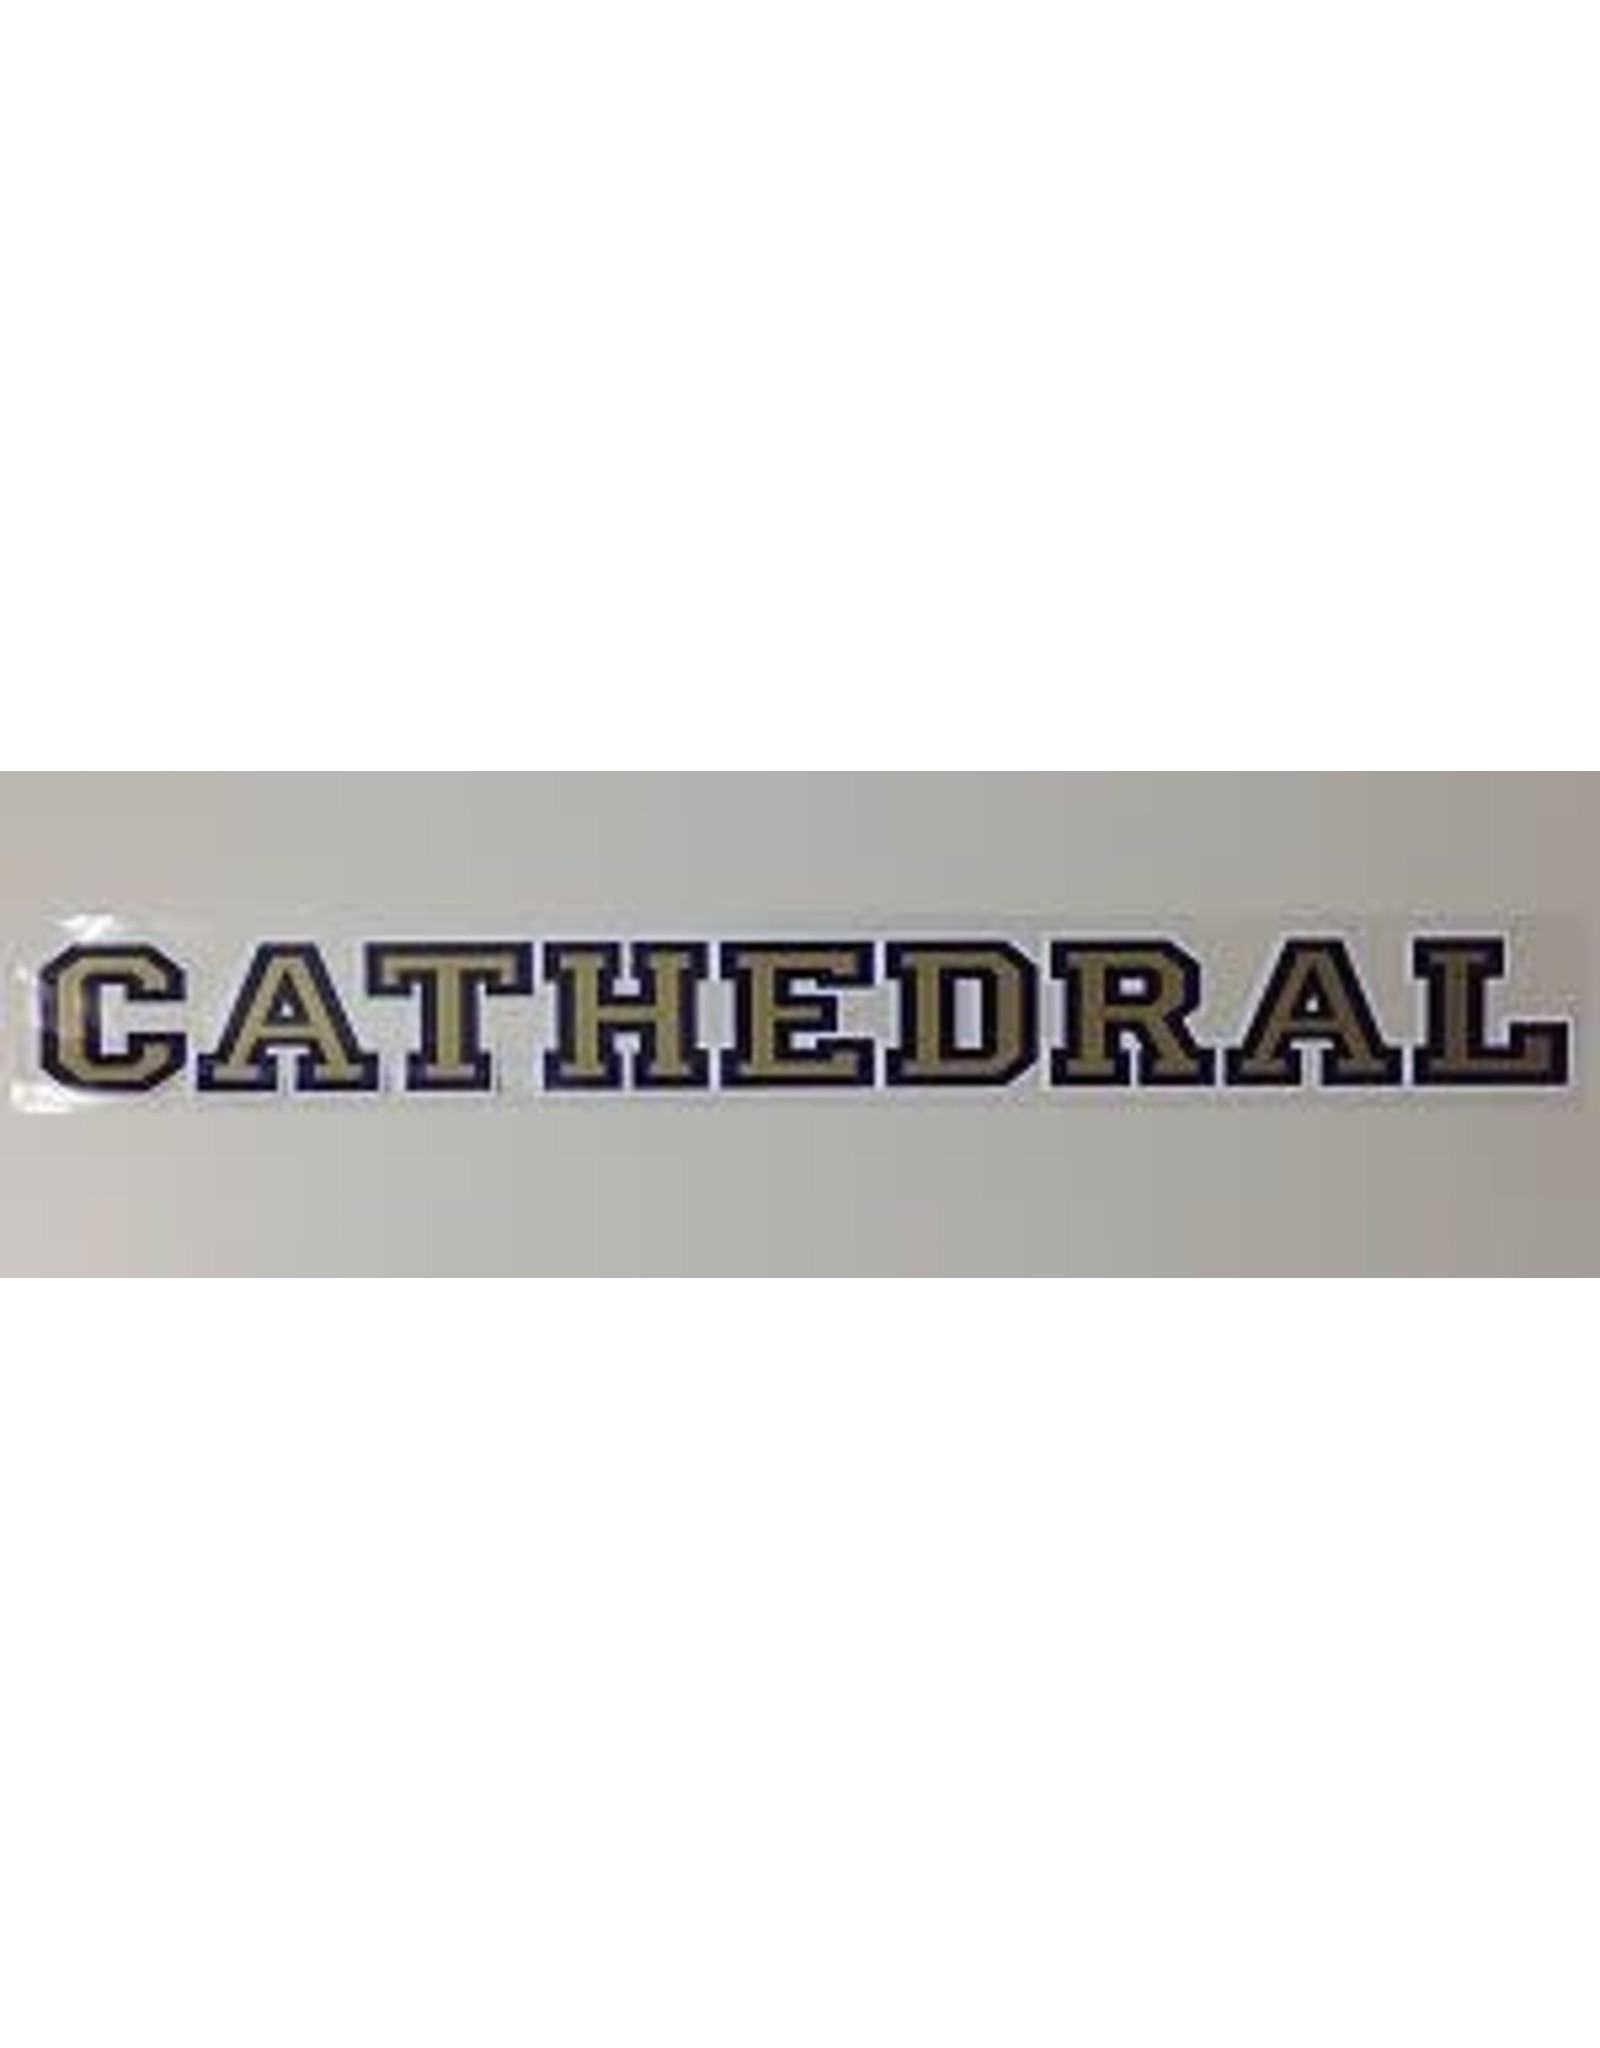 DECAL-CATHEDRAL